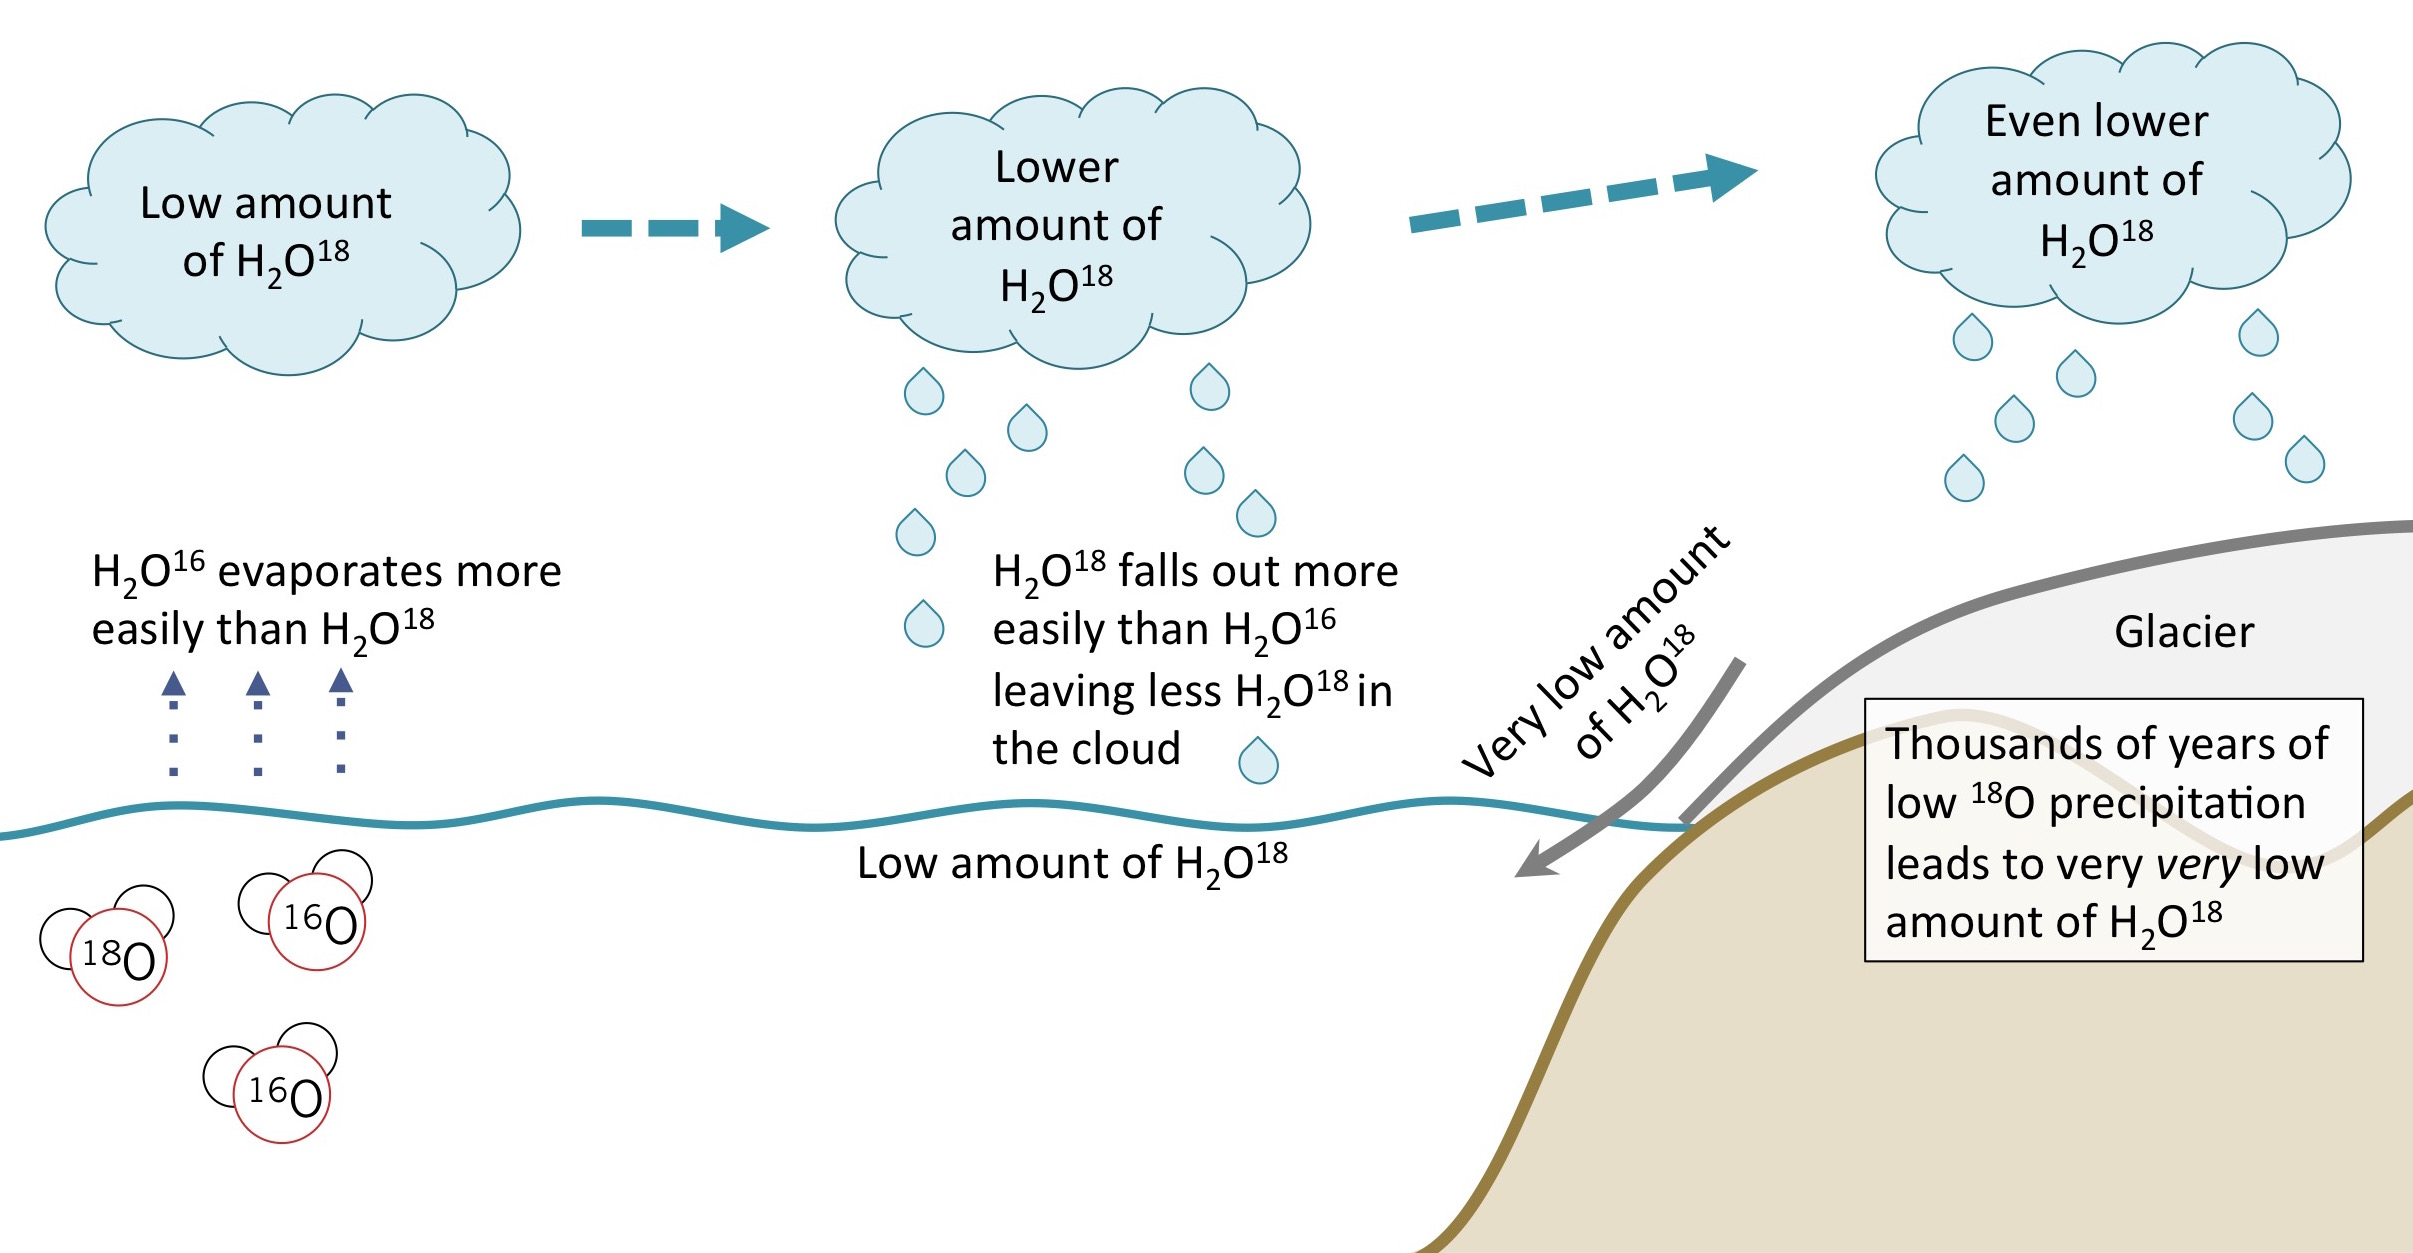 Figure 3. The isotopic fraction of oxygen in water changes as water moves from low to high latitudes in clouds. Clouds that formed in low latitudes and lost water along the way have a very low isotopic weight by the time they reach Antarctica. This makes precipitation that falls on Antarctica, and the glaciers that form over tens of thousands of years, very isotopically light.